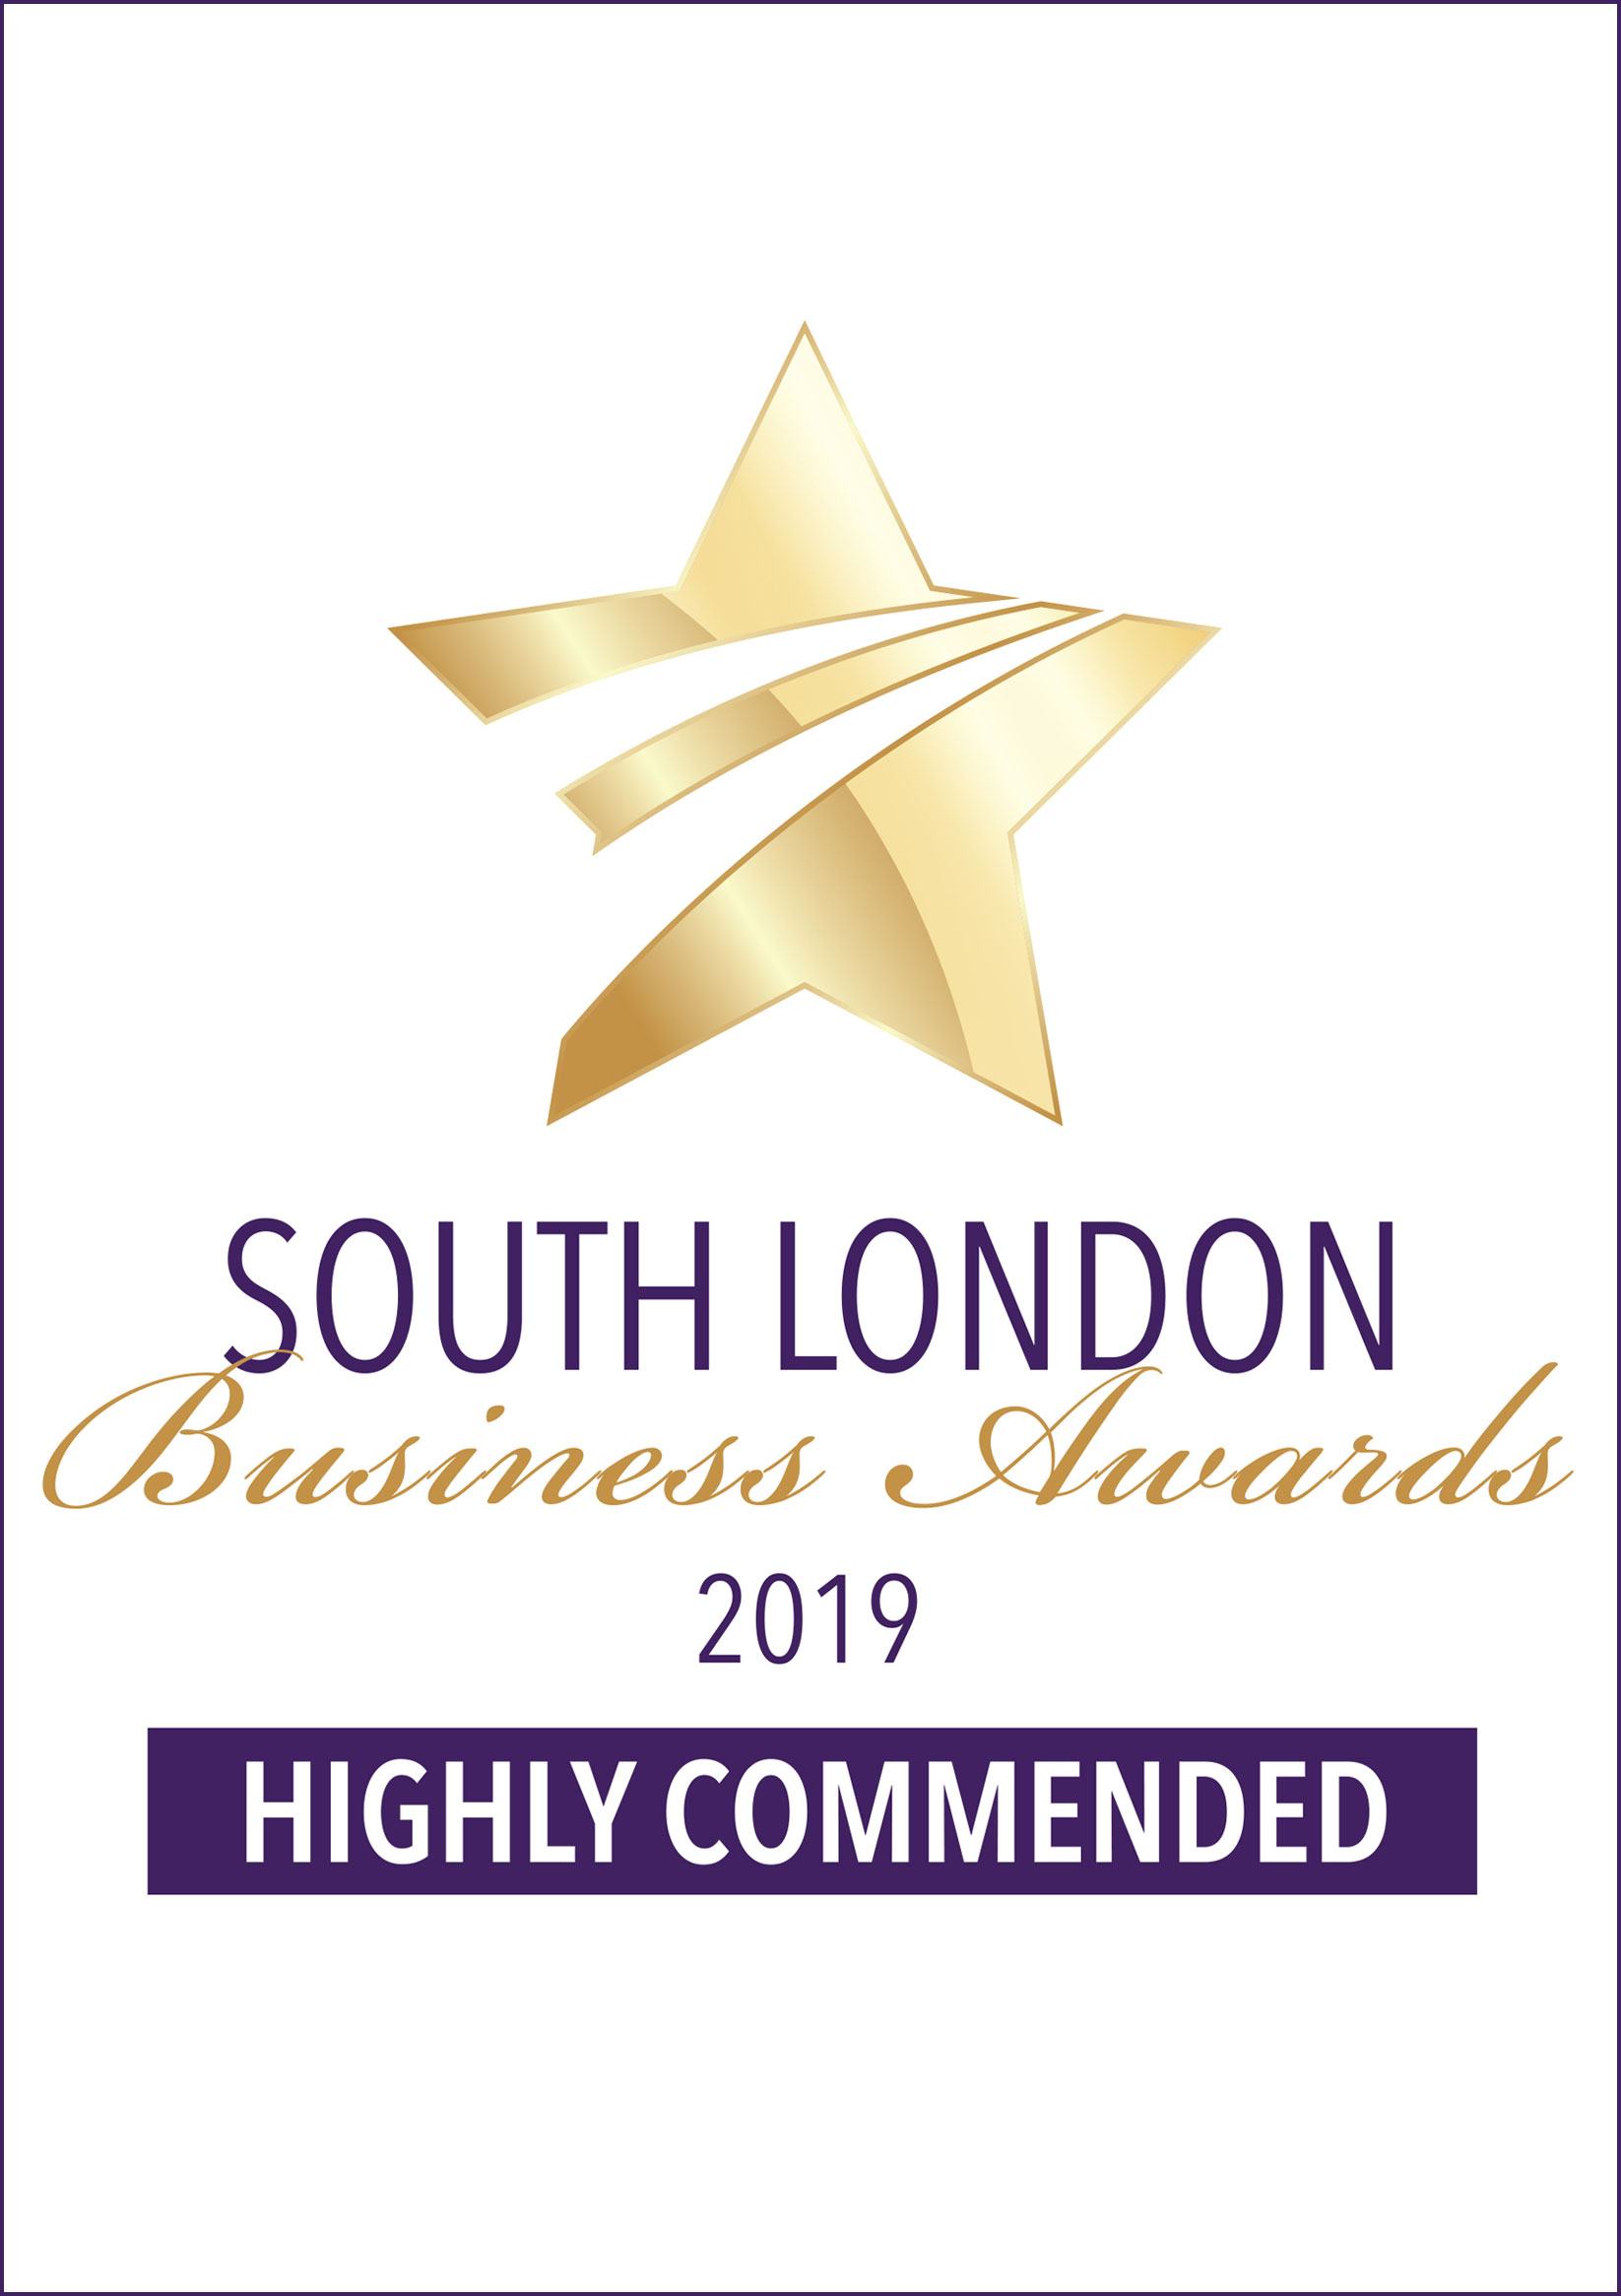 South London Business Awards 2019 - Highly Commended Certificate for - Best Business for Customer Service